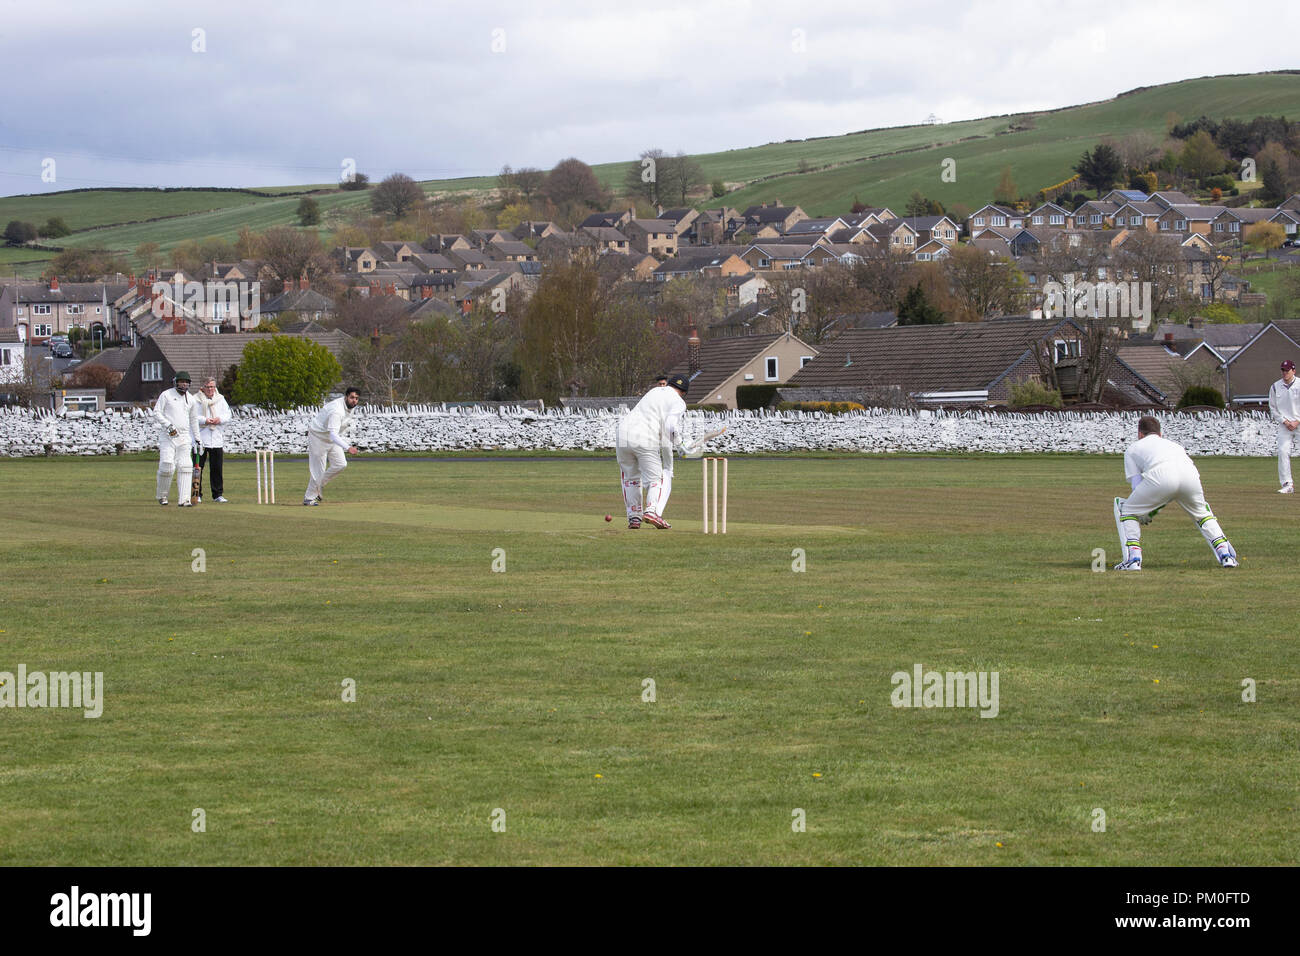 Local village cricket match being played in Yorkshire, England U.K. - Stock Image